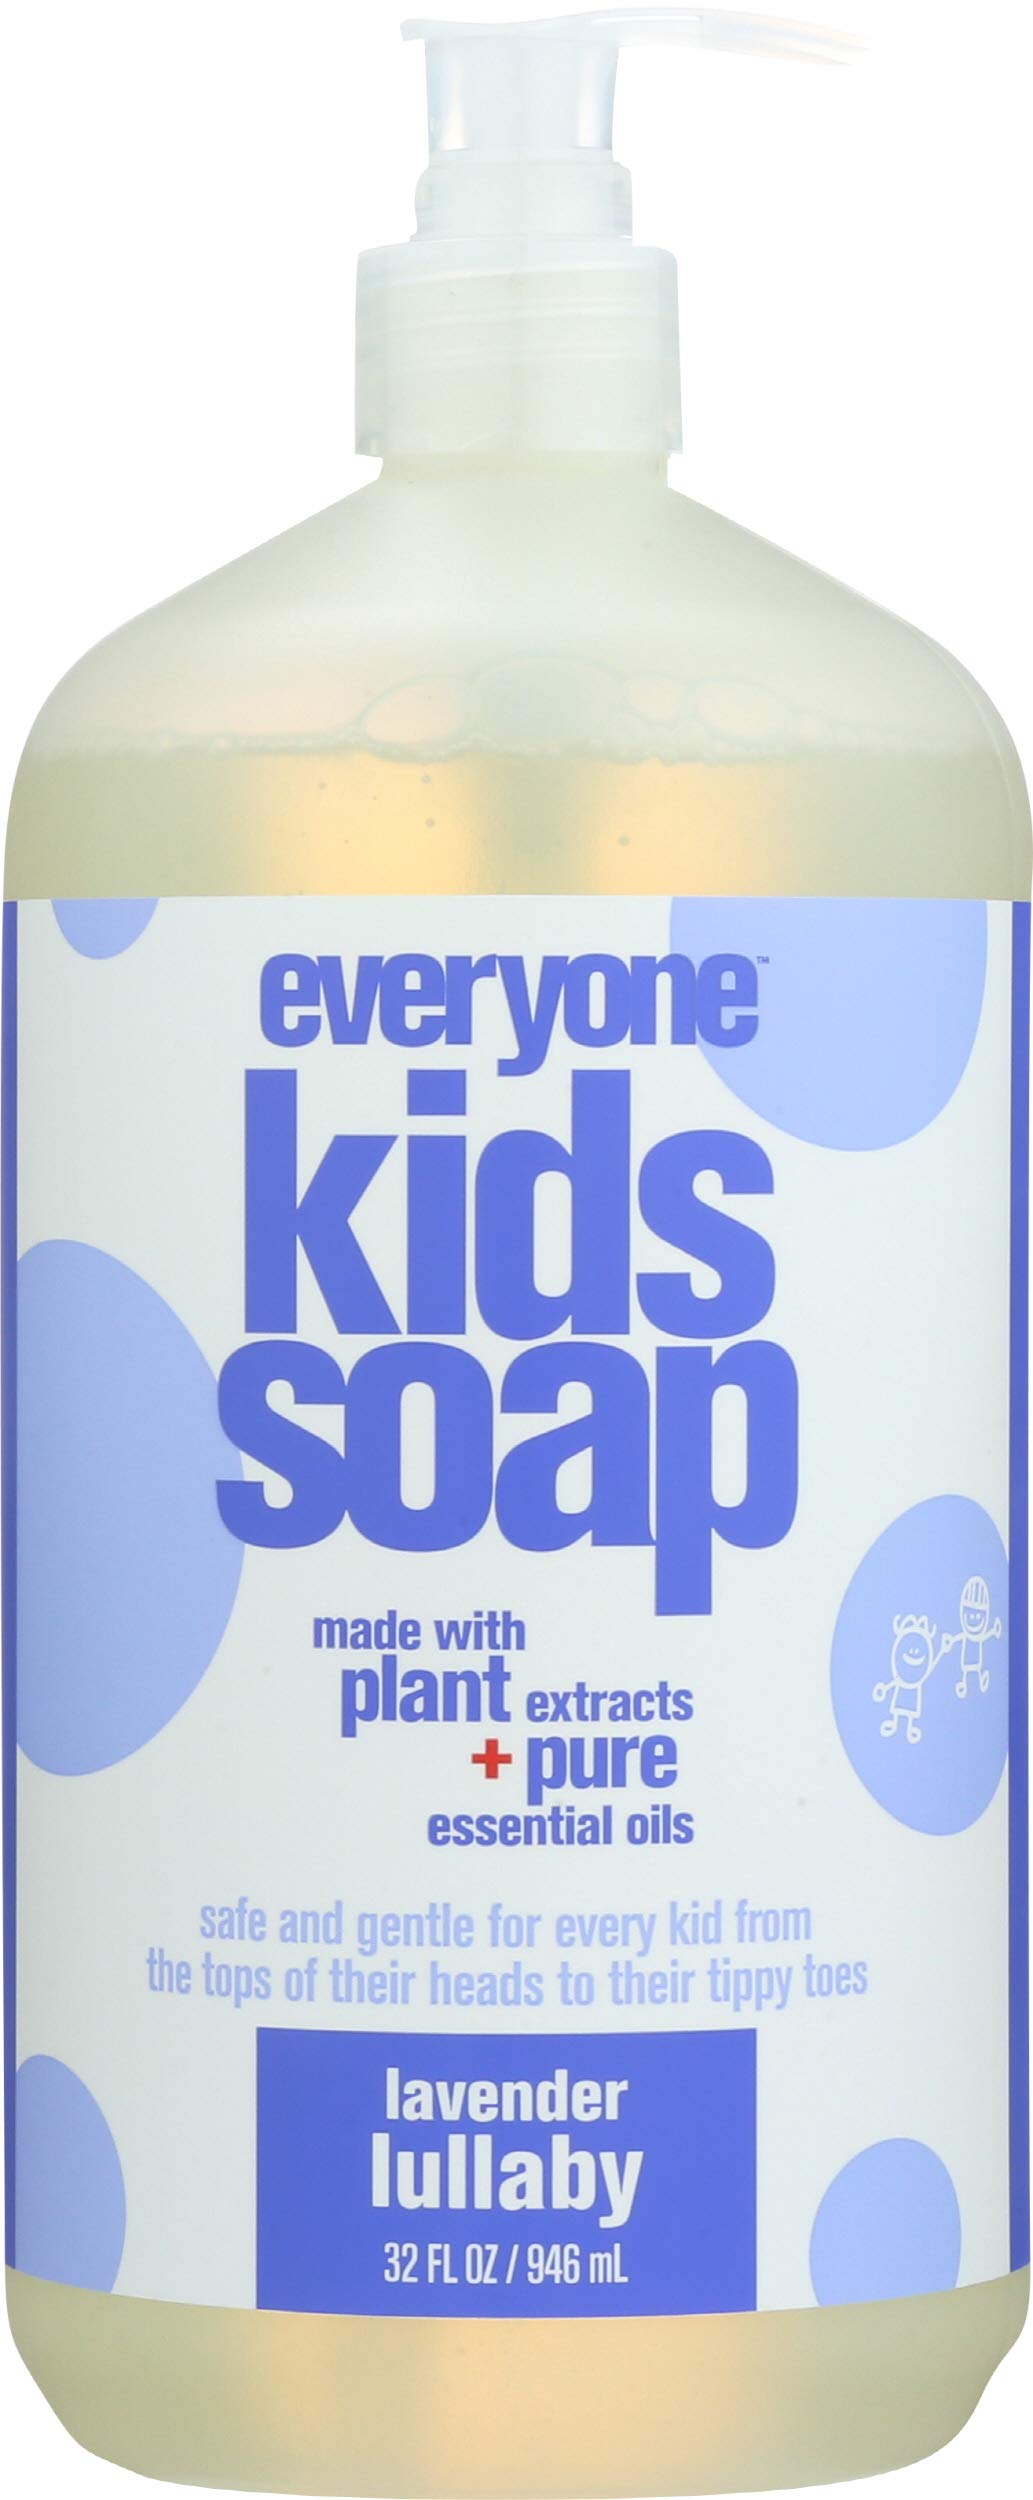 Everyone 3-in-1 Soap for Every Kid Safe, Gentle and Natural Shampoo, Body Wash, and Bubble Bath, Lavender Lullaby